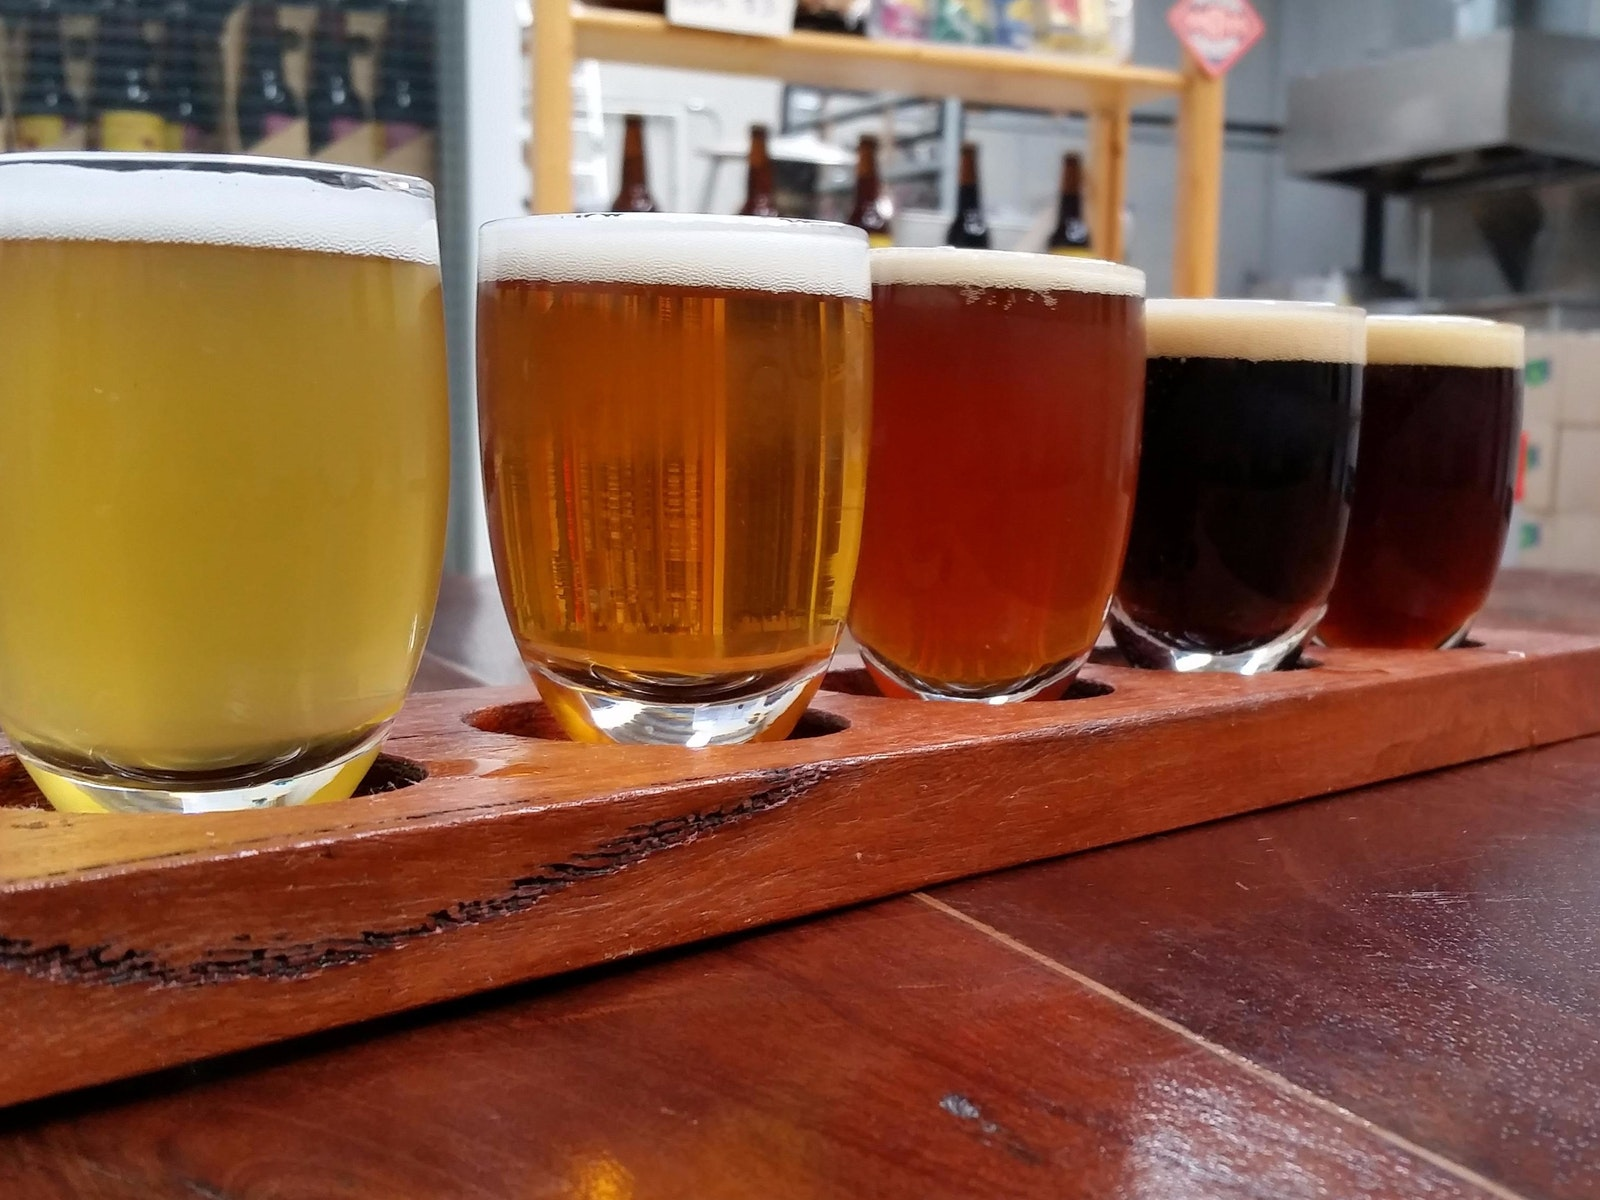 A five beer tasting paddle